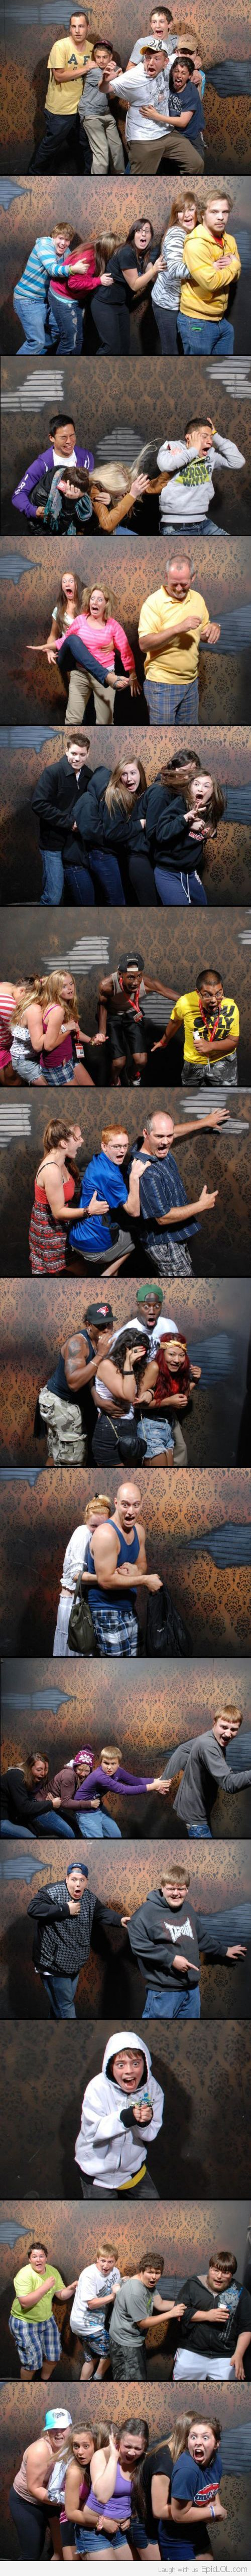 cant stop laughing. camera put in a haunted house! HAHAHAAHAH